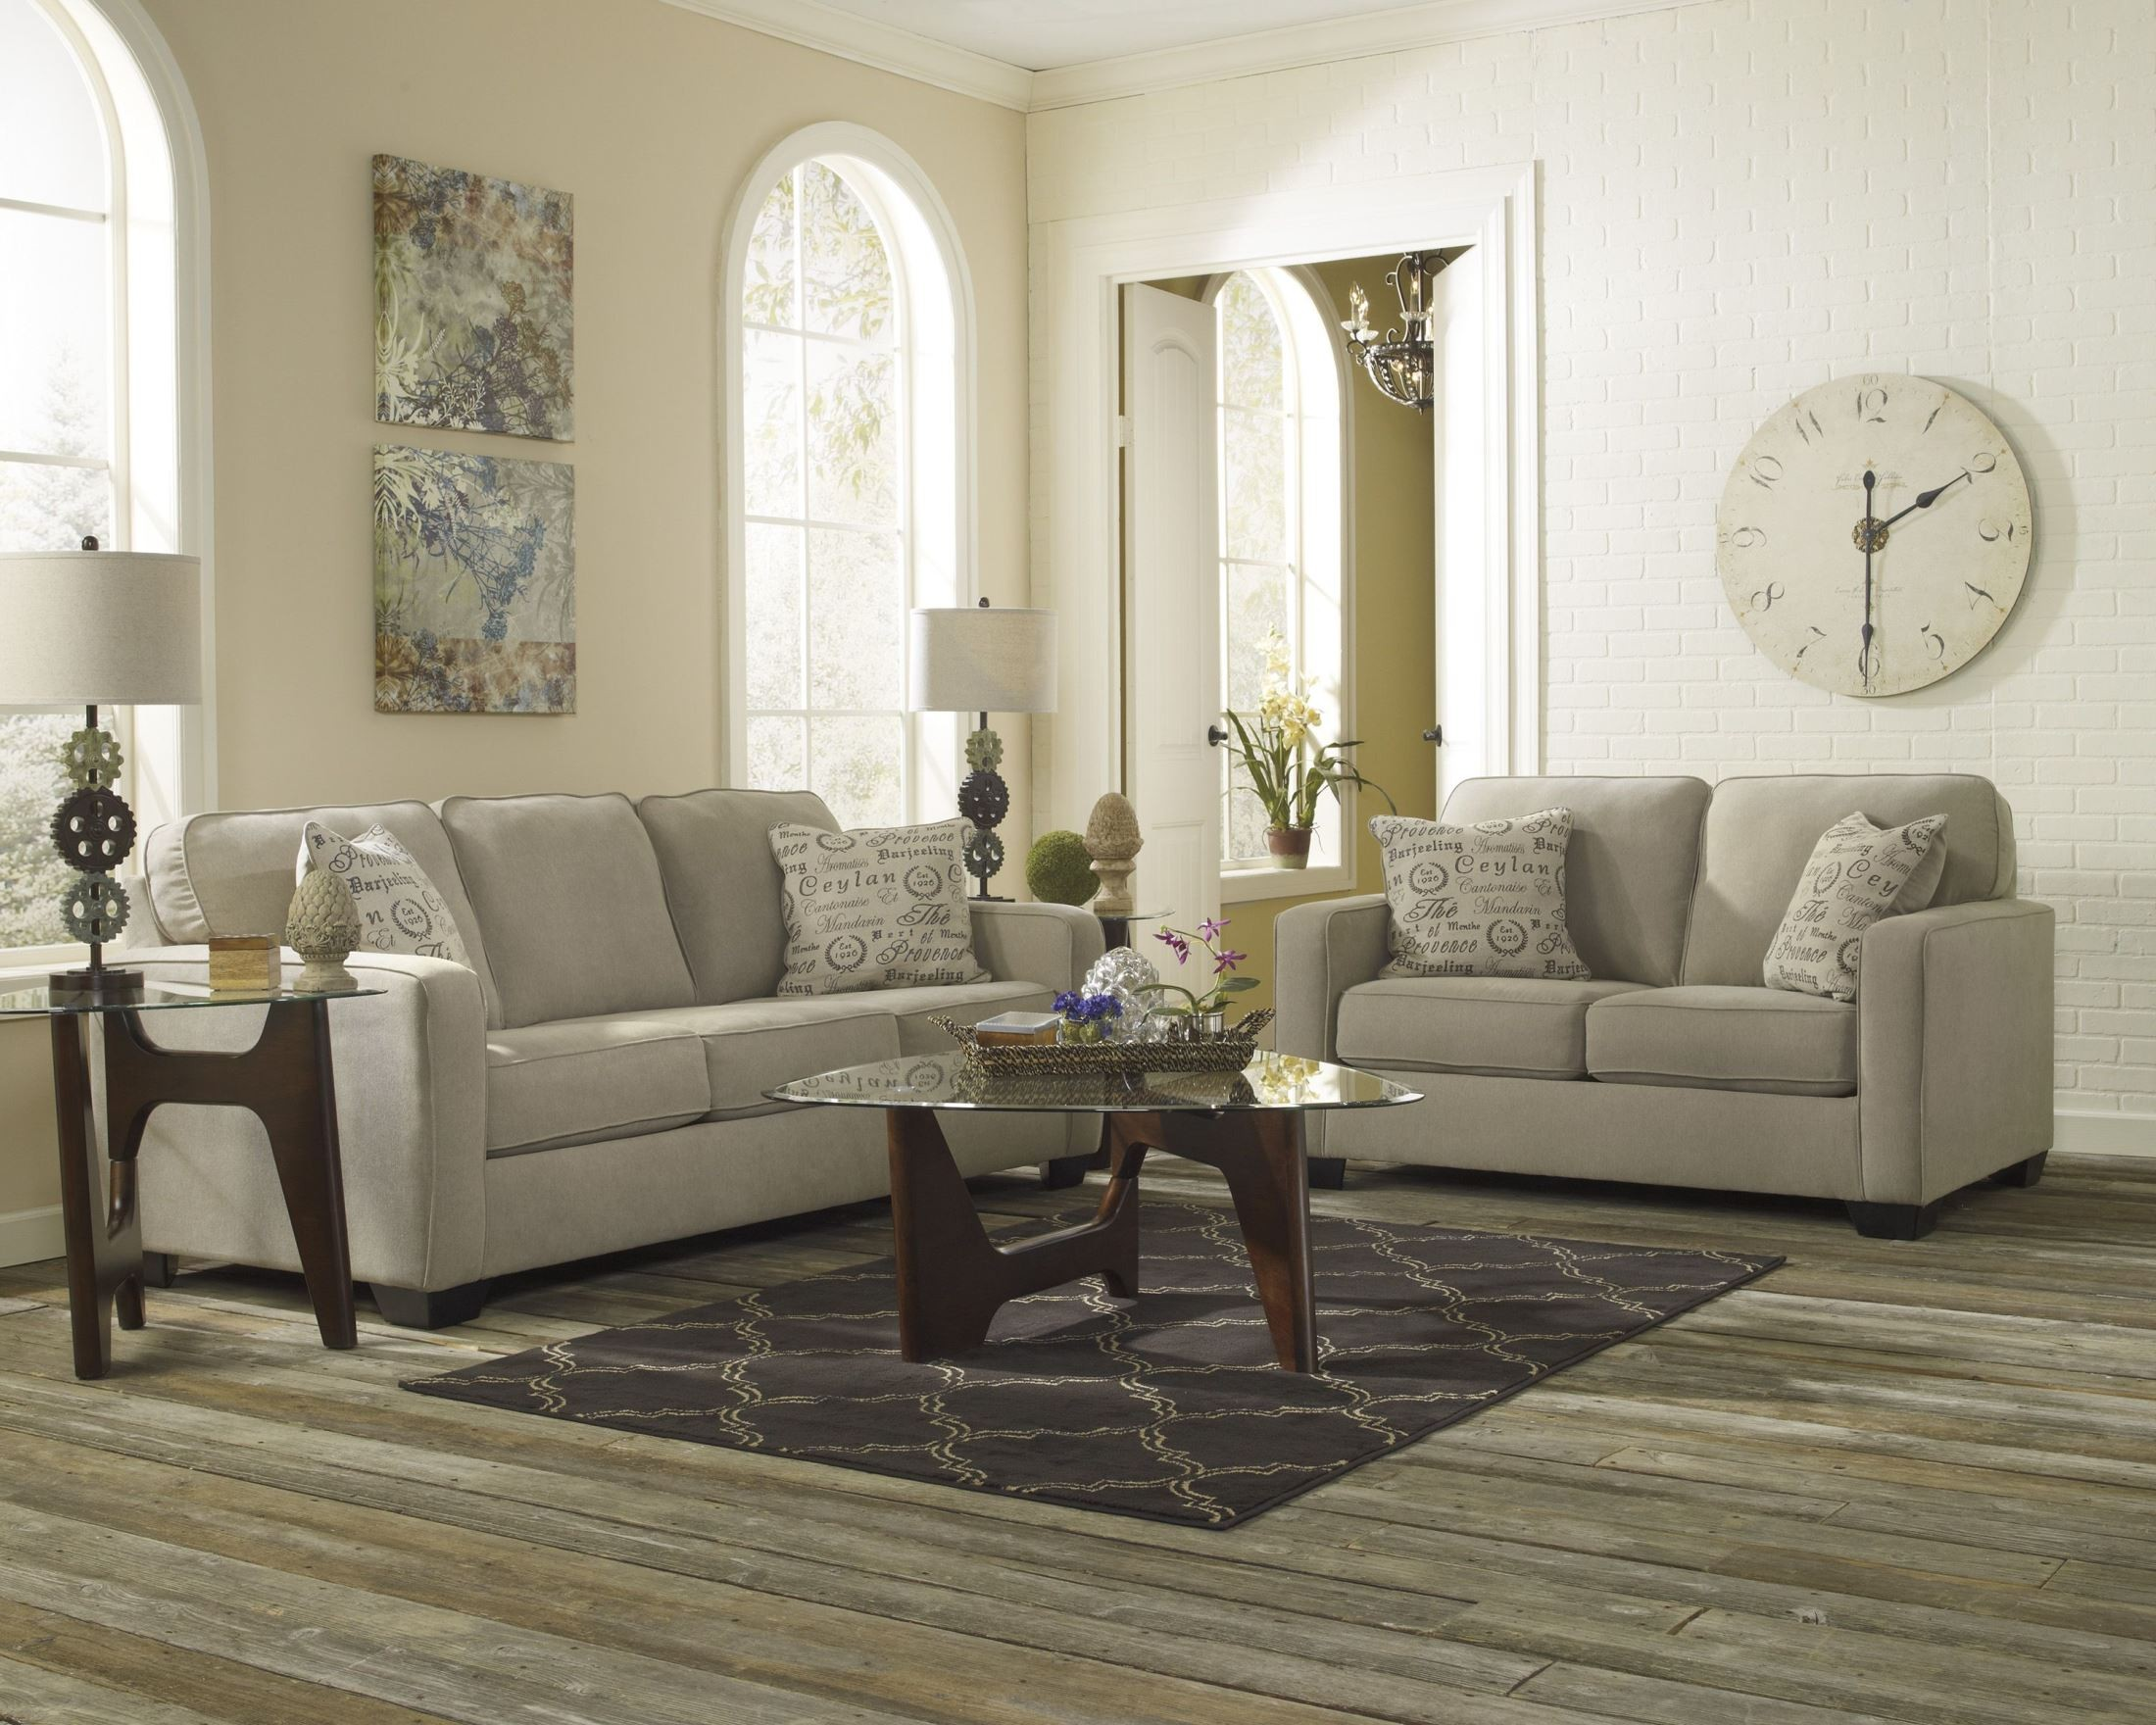 Alenya Quartz Living Room Set from Ashley 38 35